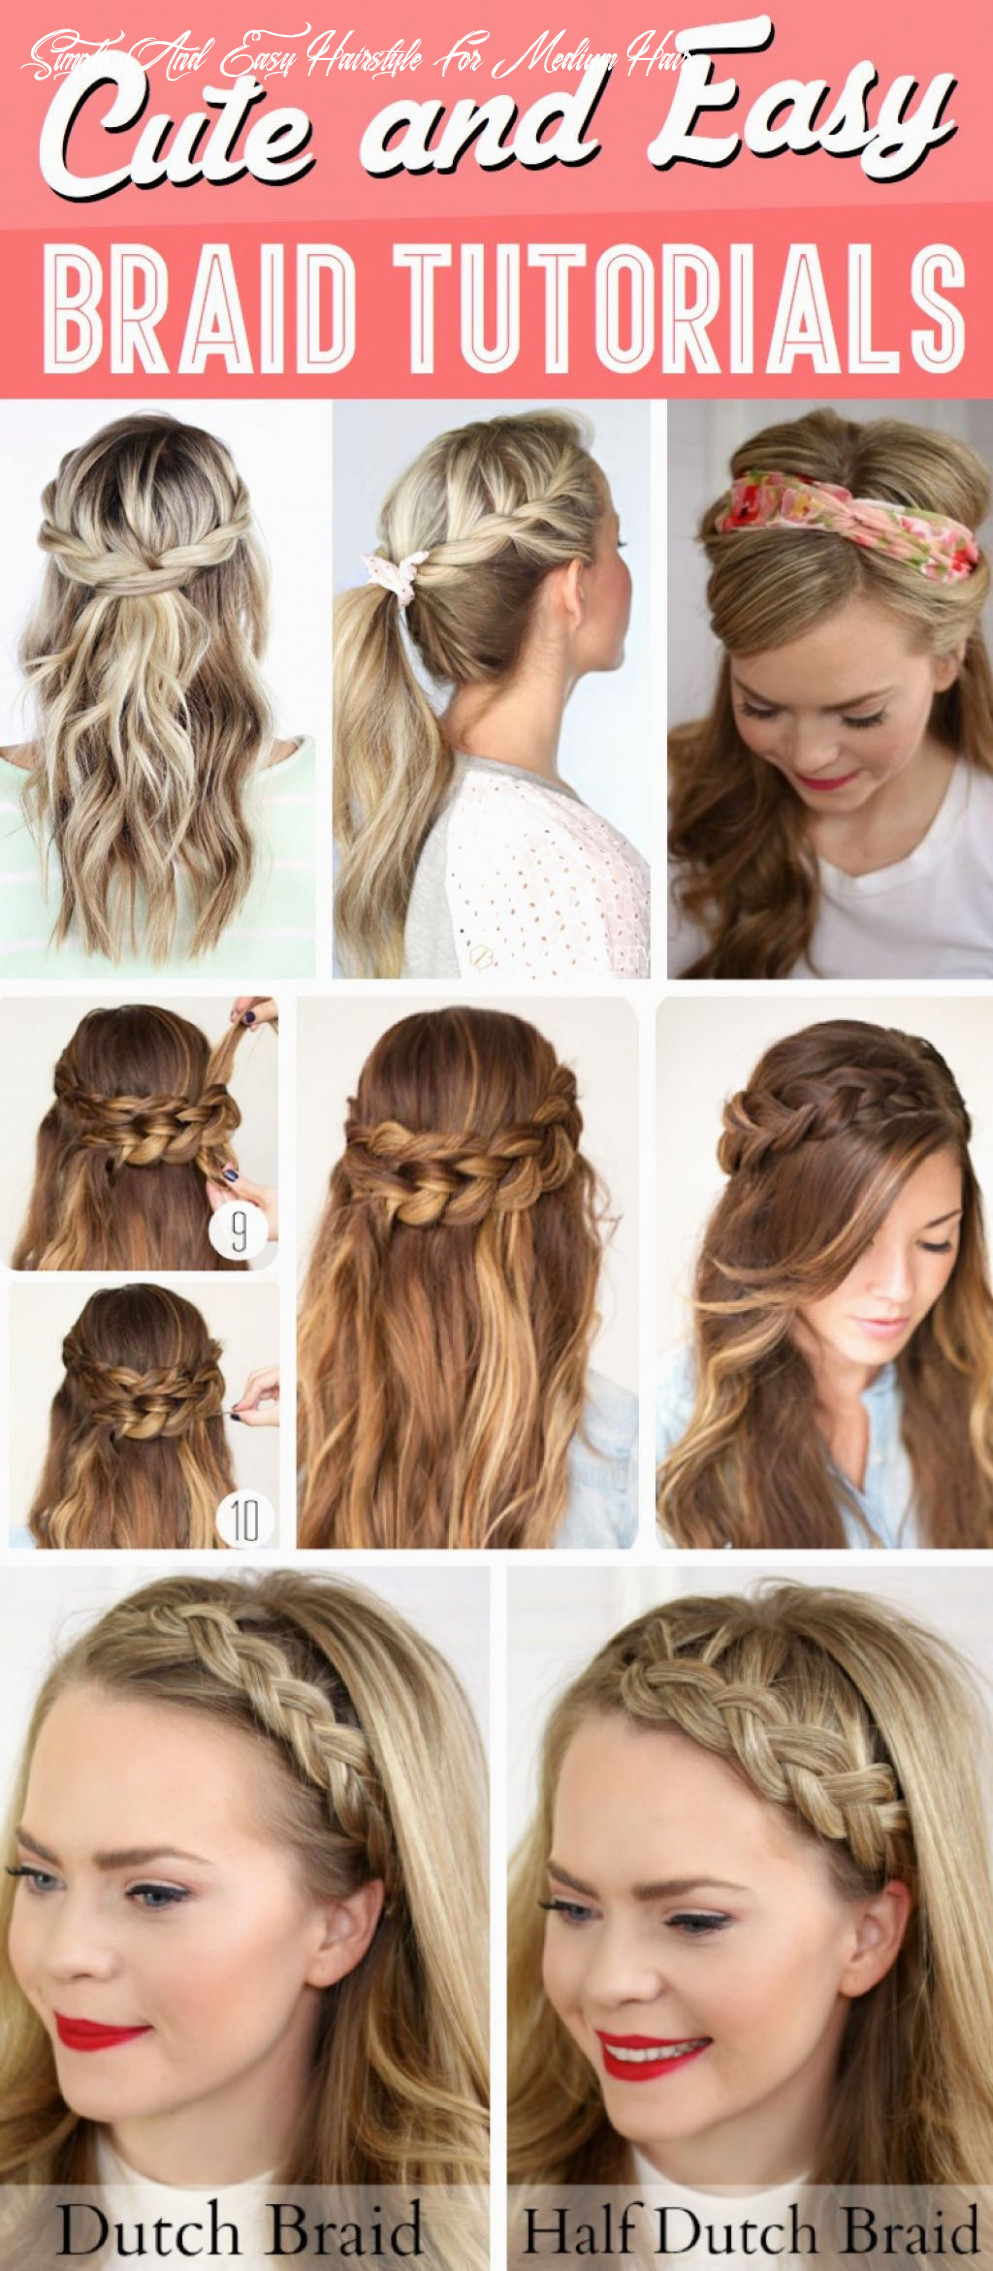 How to do simple hairstyles by yourself fresh cute simple